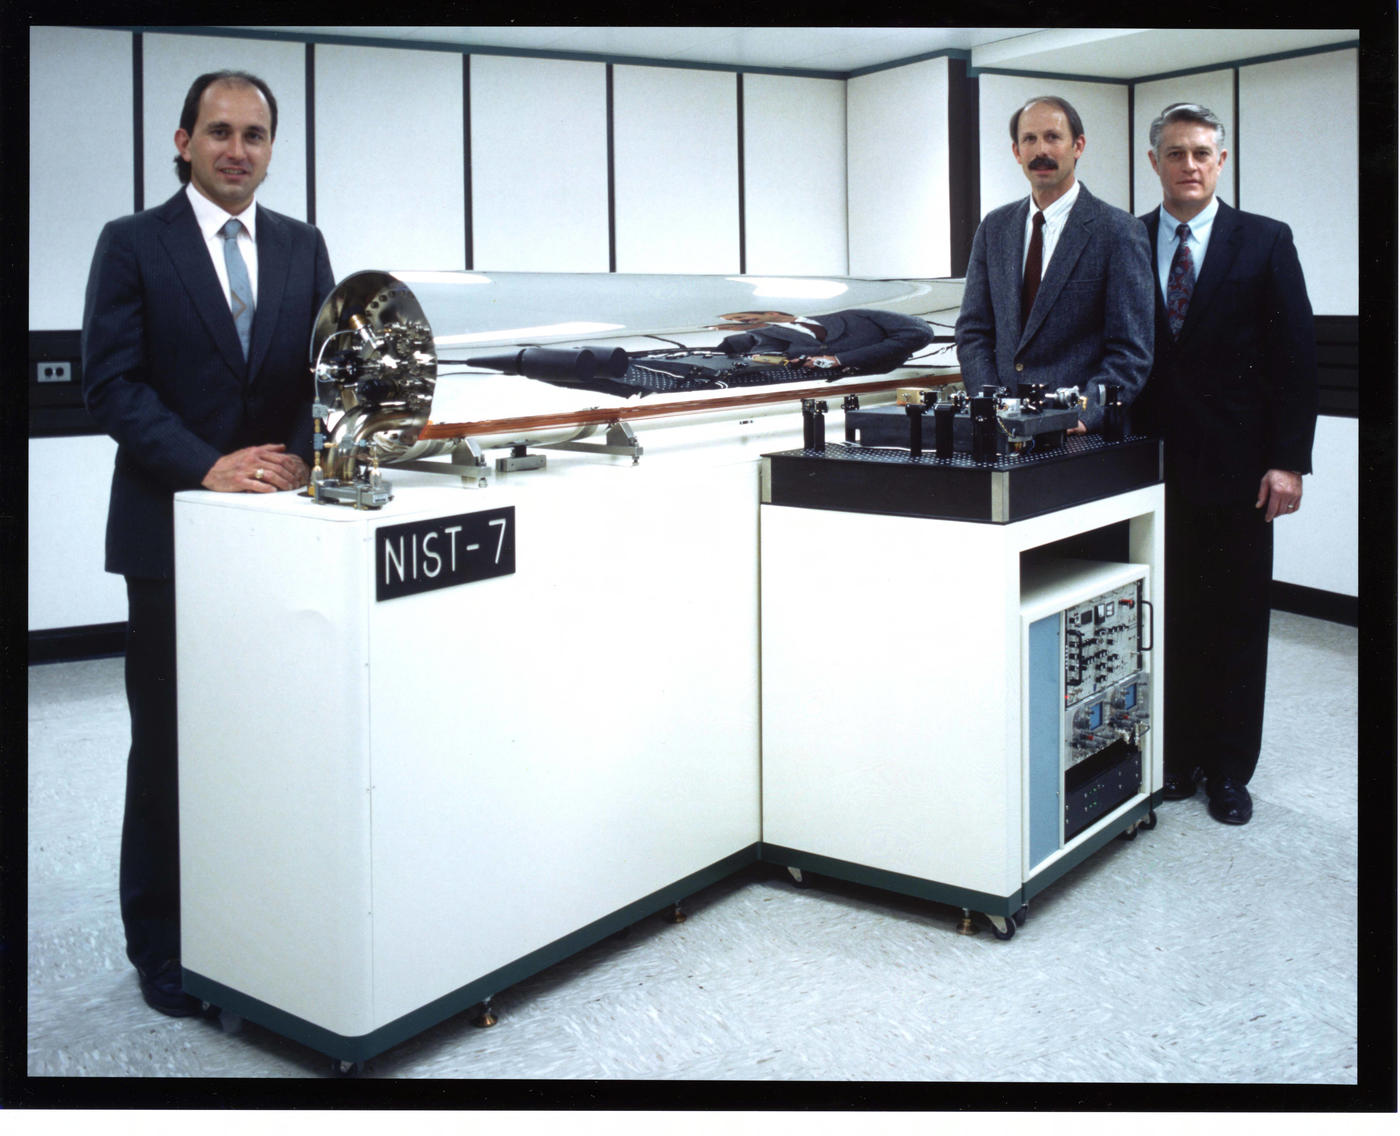 Three men stand behind a glass tube with equipment inside